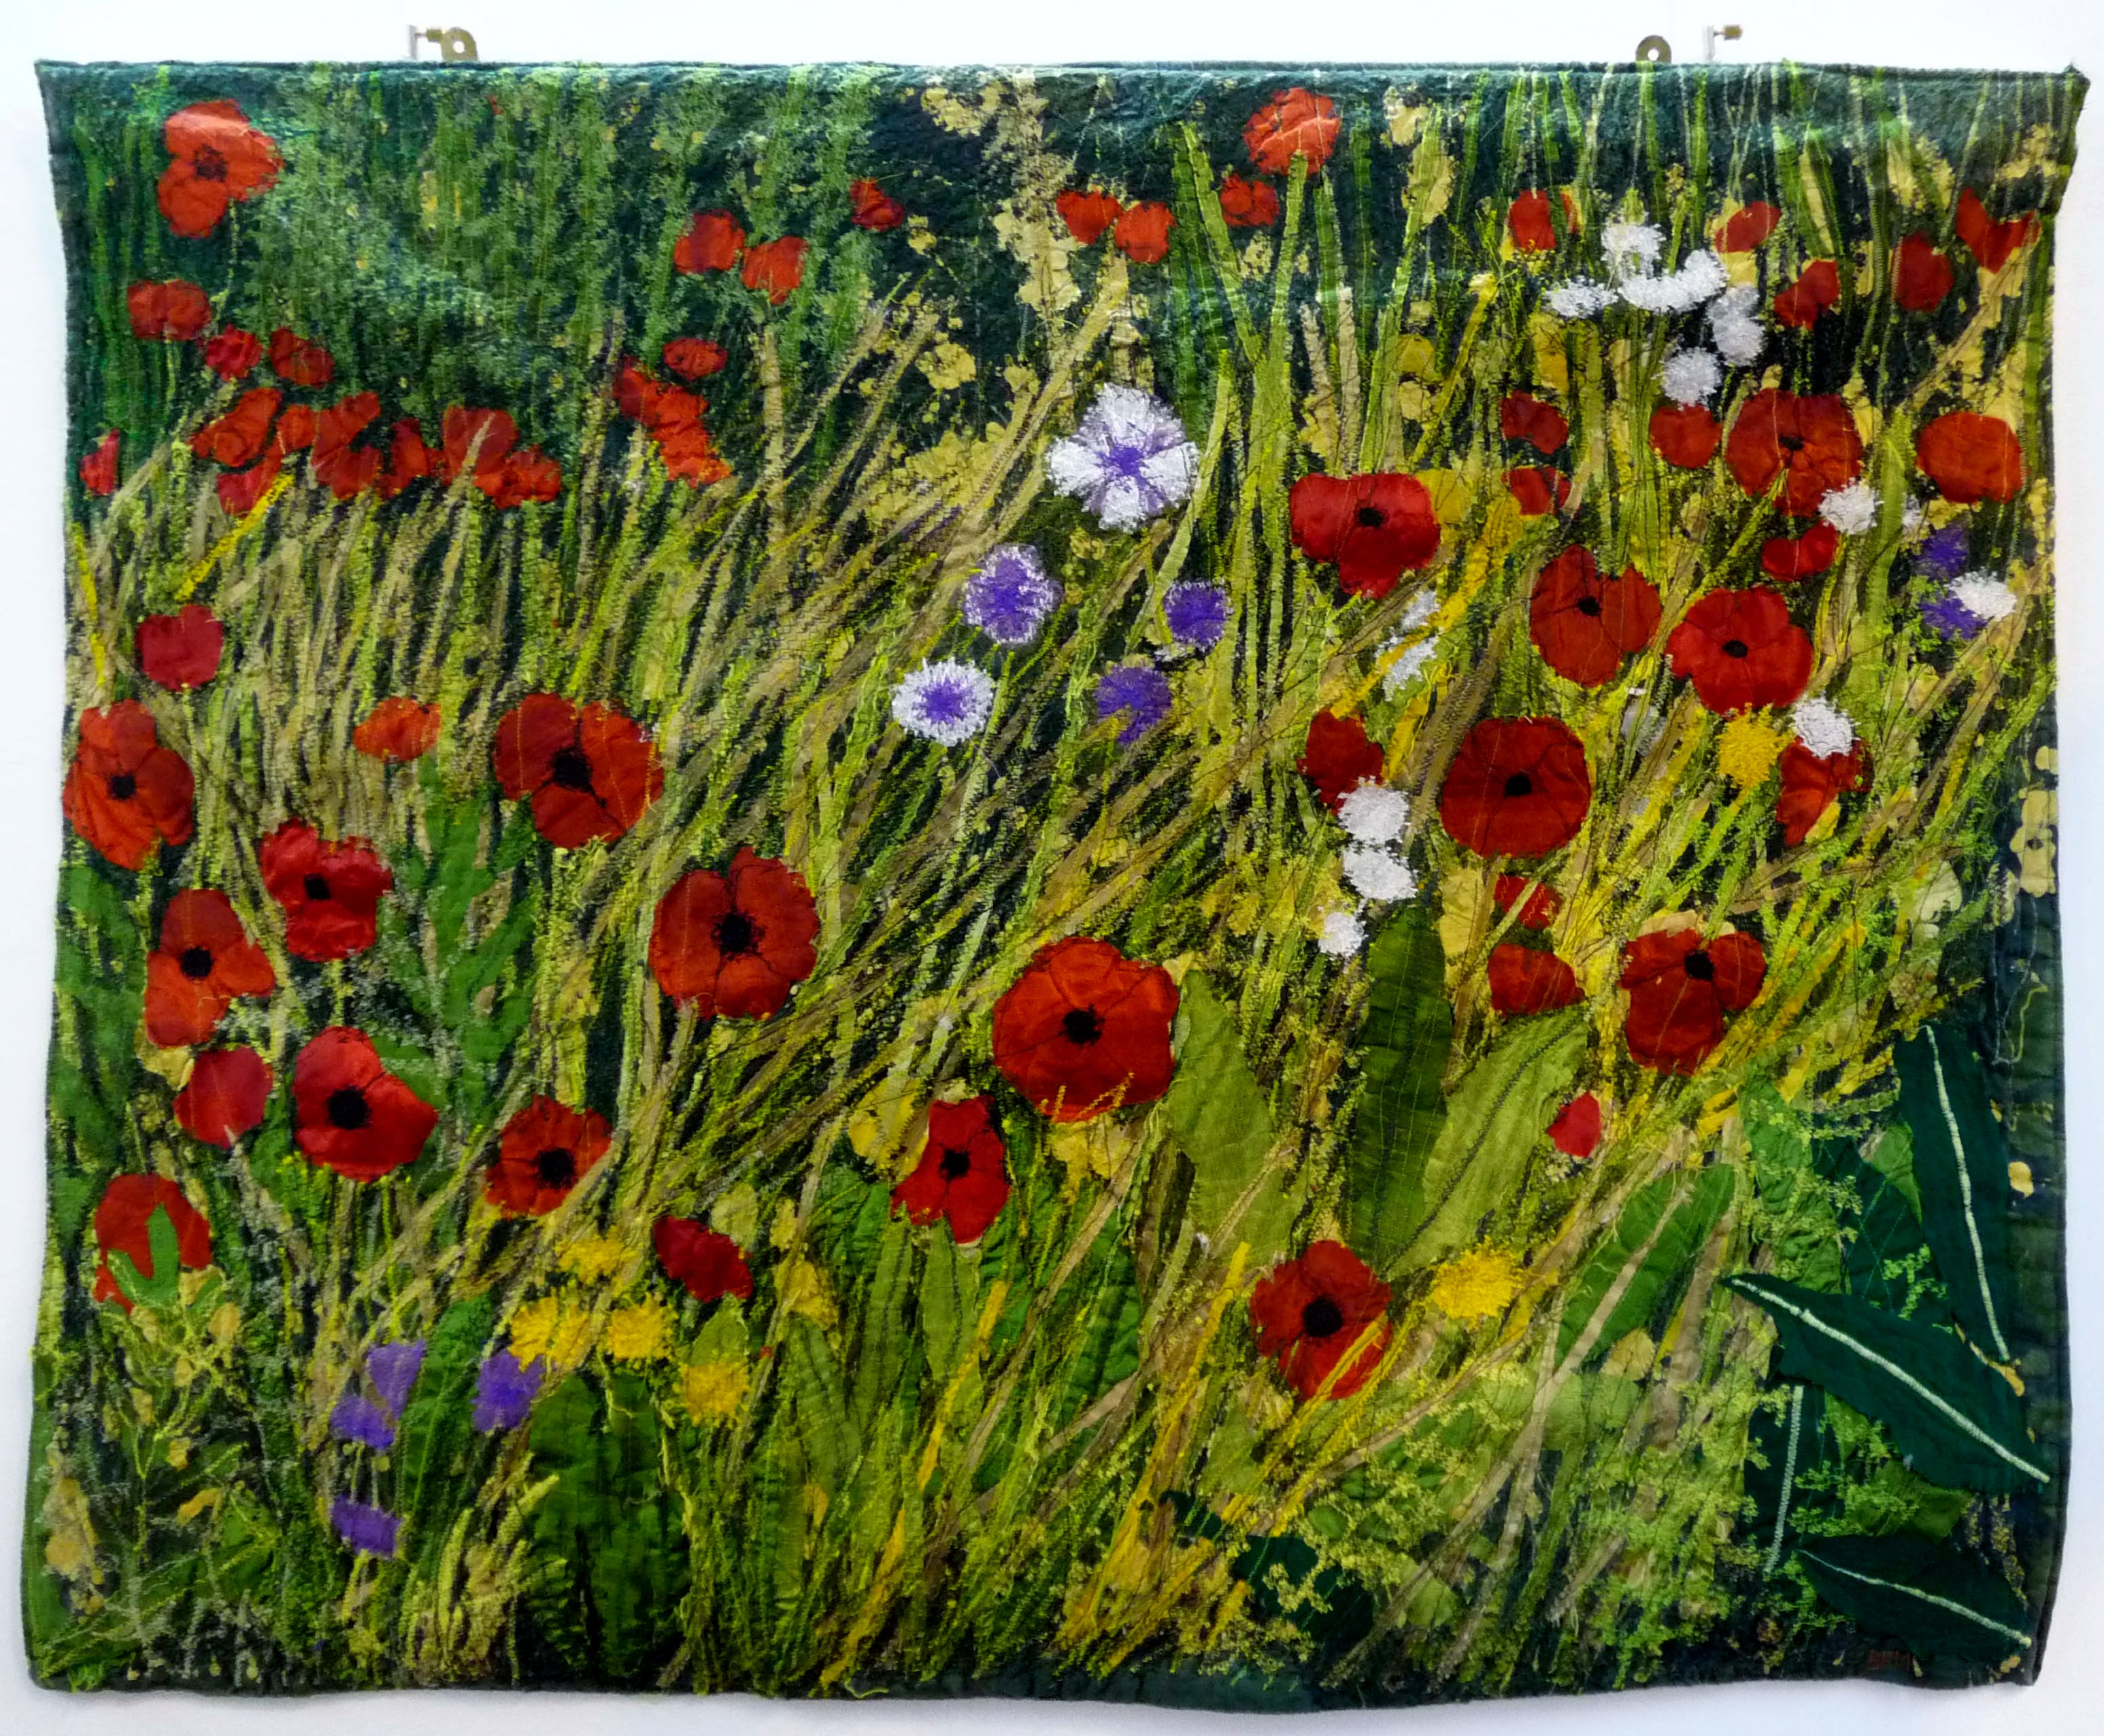 entry to Capability Brown Festival with Embroiderers' Guild, POPPIES IN THE WILD GARDEN AT WHITTINGTON PARK by Betty Fraser Myerscough